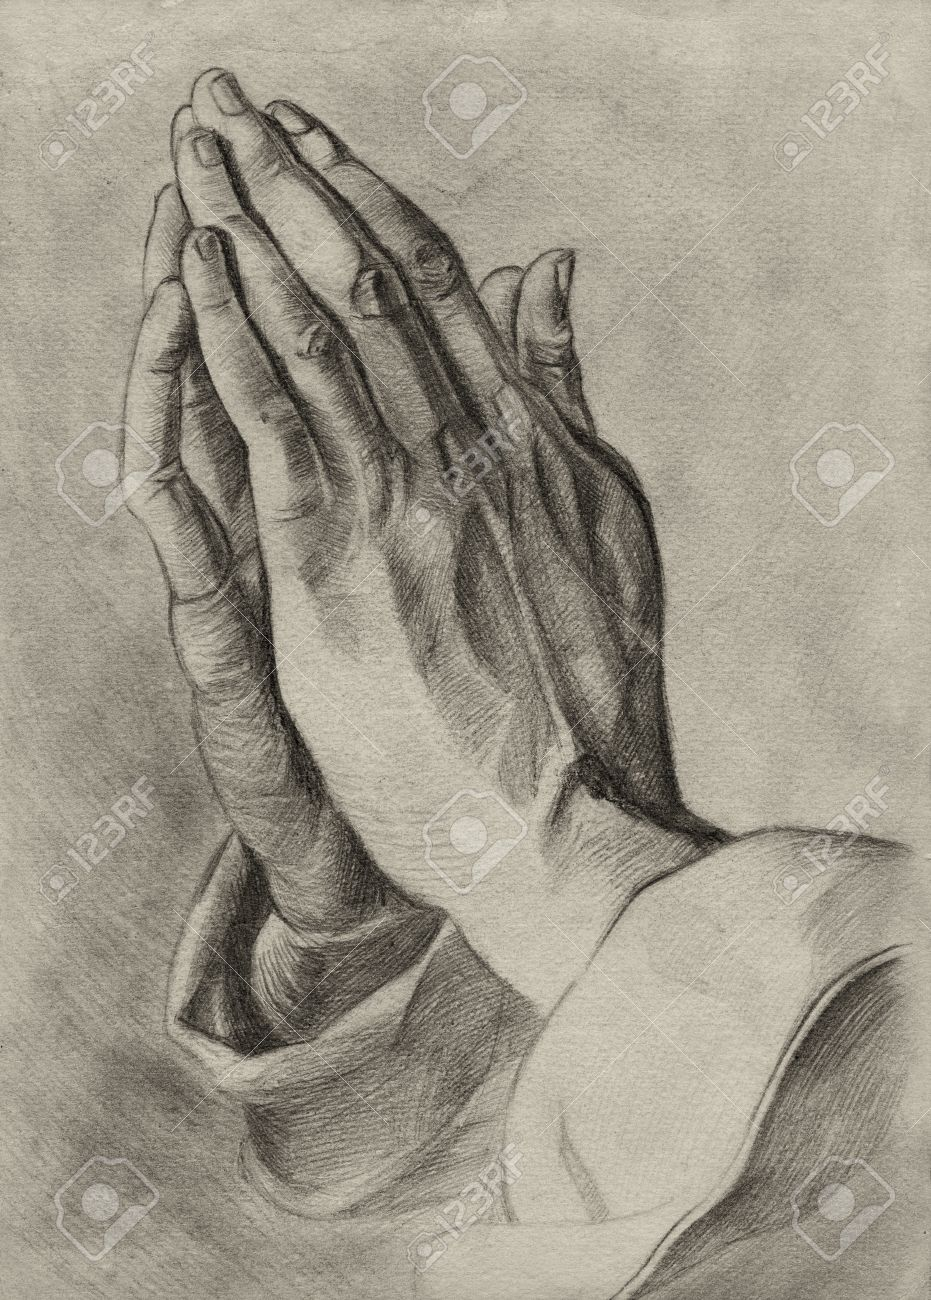 931x1300 Hands In Pray Pose. Pencil Drawing. Stock Photo, Picture